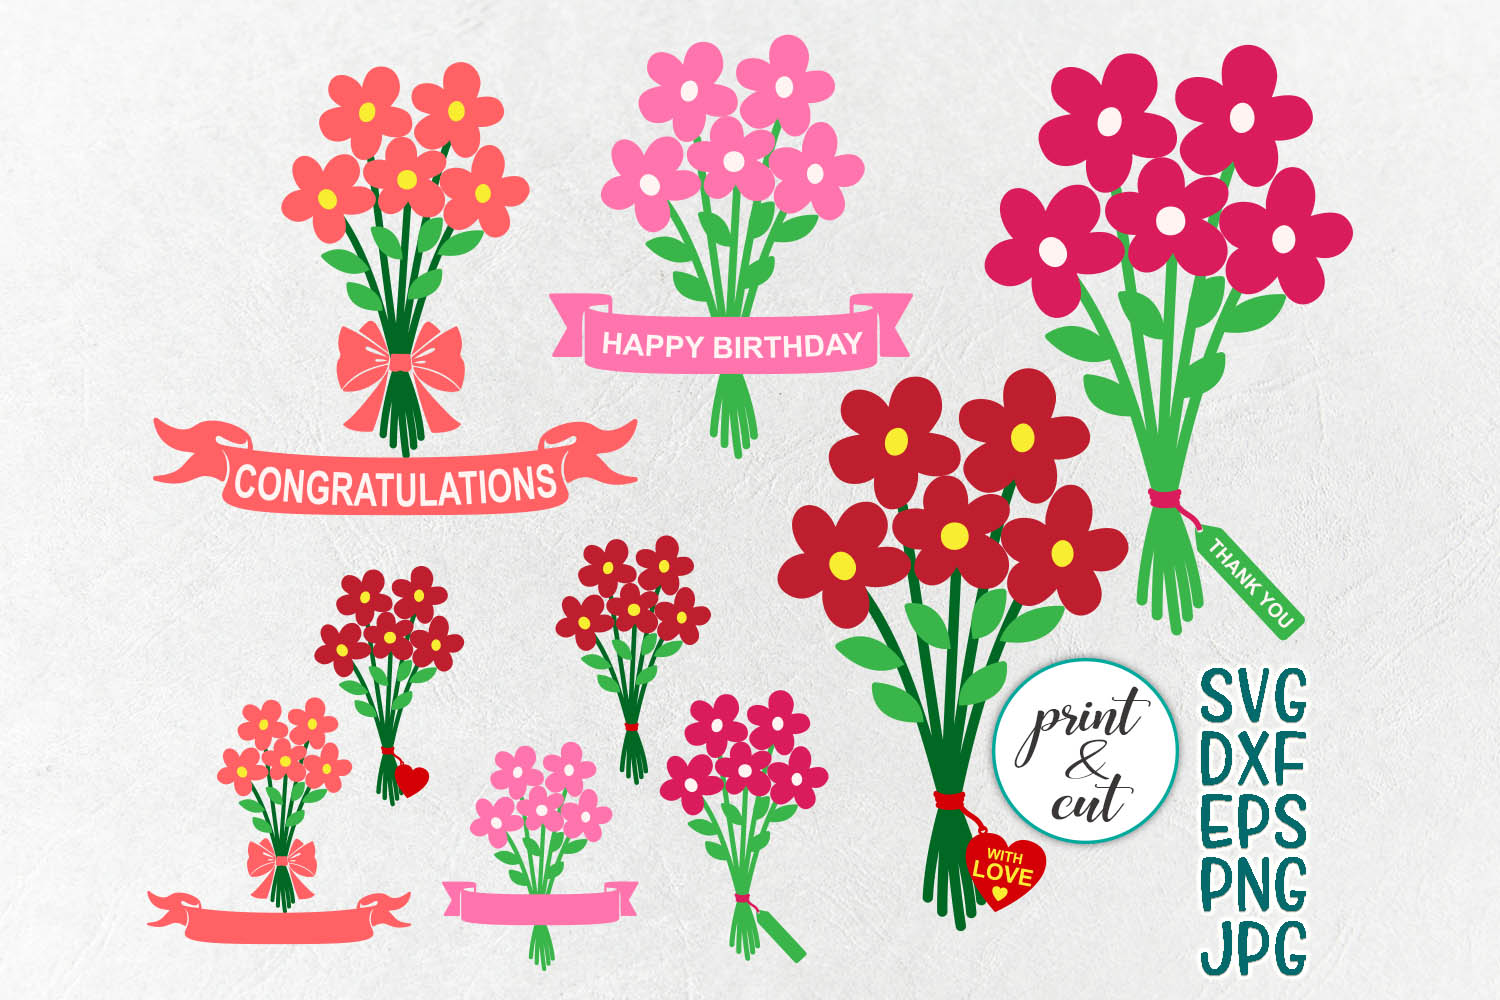 Download Free Flowers Bouquet Graphic By Cornelia Creative Fabrica for Cricut Explore, Silhouette and other cutting machines.